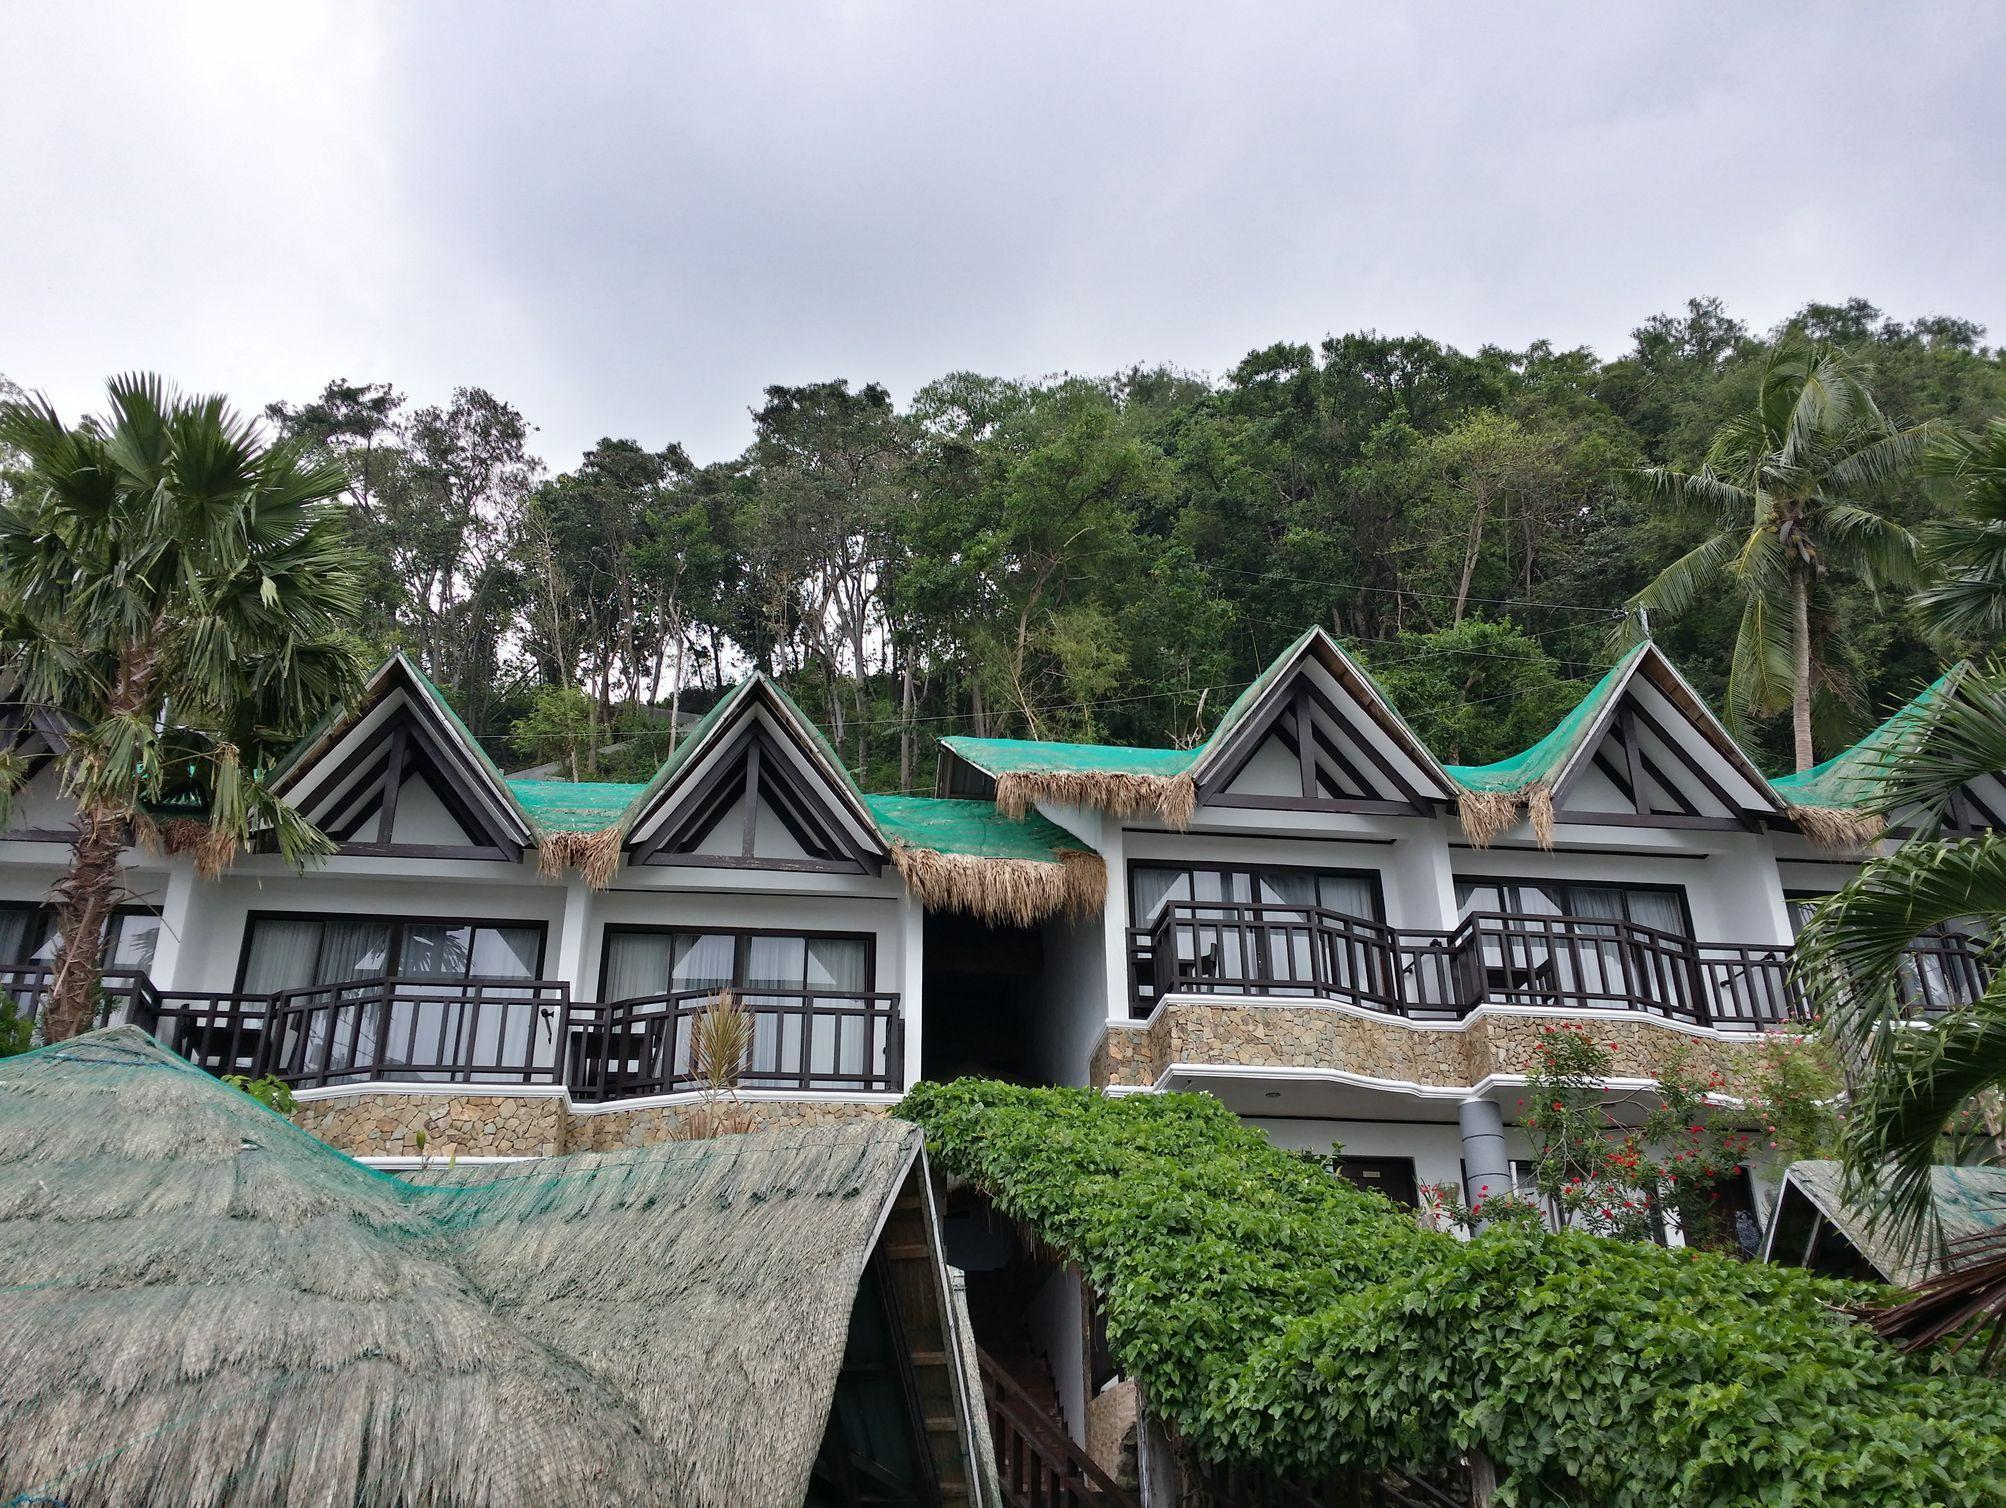 Crystal Blue Resort, Mabini